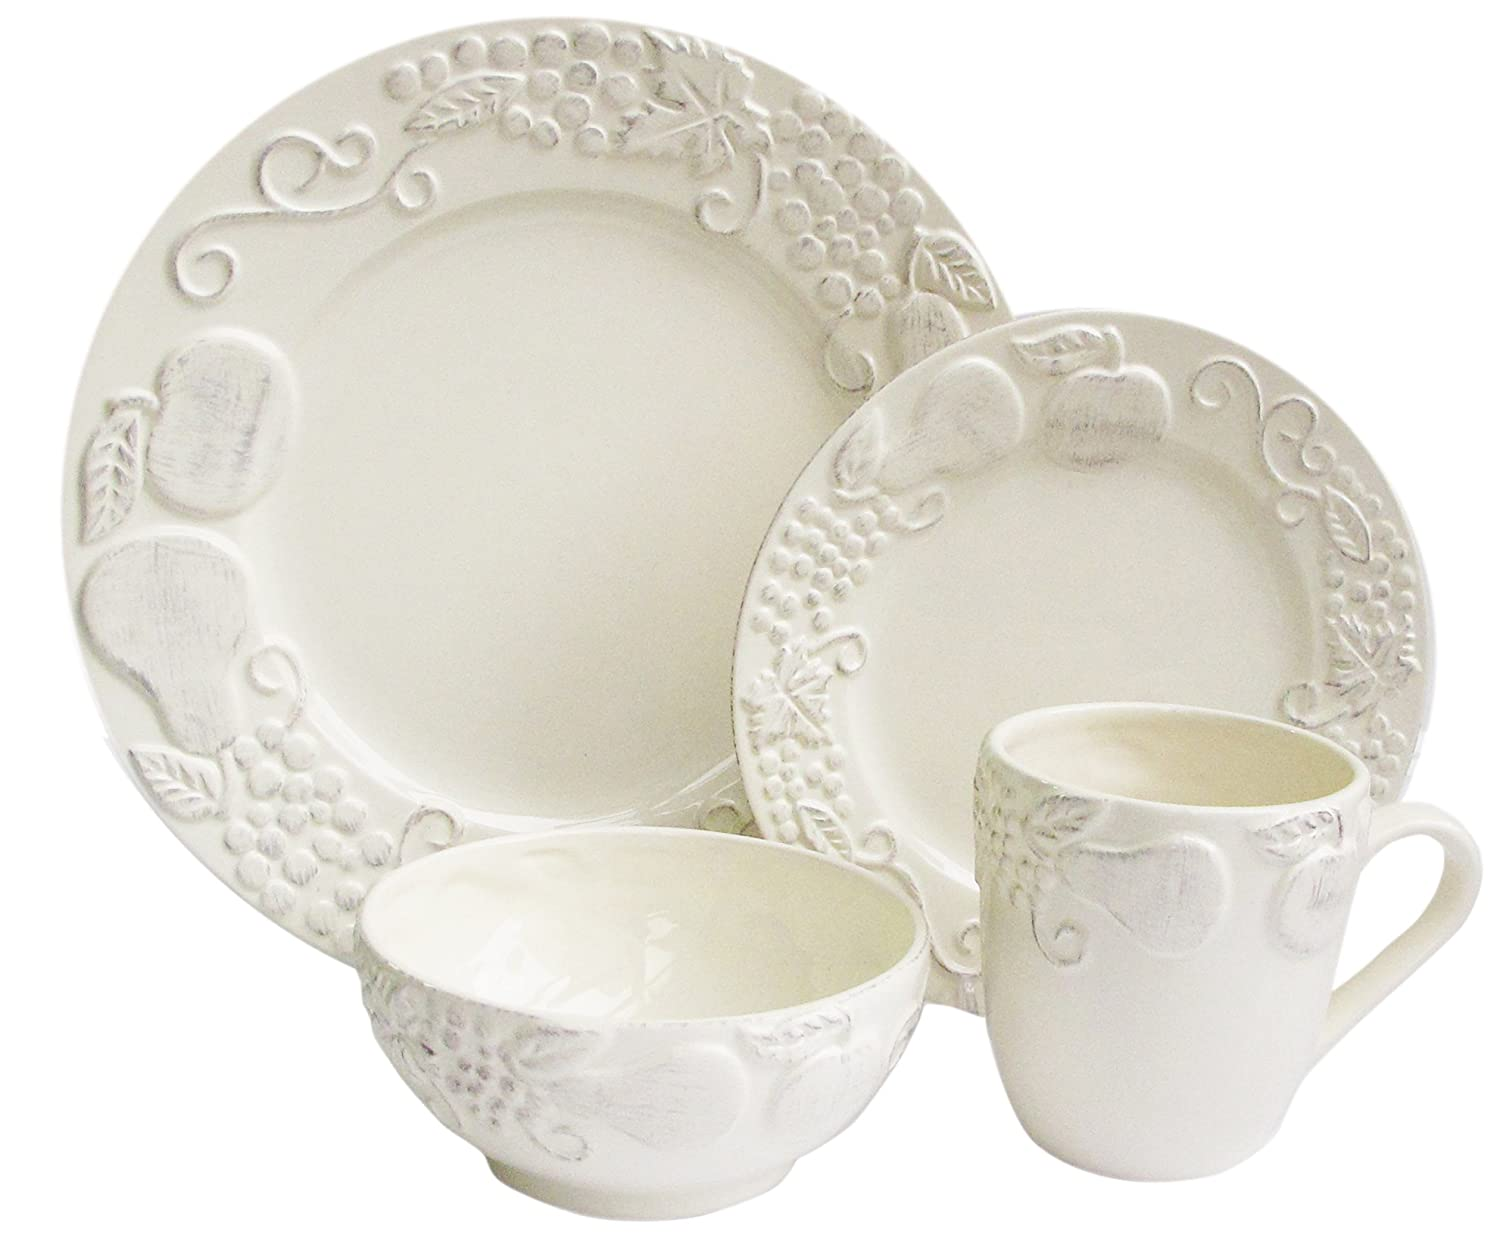 Amazon.com | American Atelier Frutta 16-Piece Dinnerware Set Cream Dinnerware Sets  sc 1 st  Amazon.com & Amazon.com | American Atelier Frutta 16-Piece Dinnerware Set Cream ...